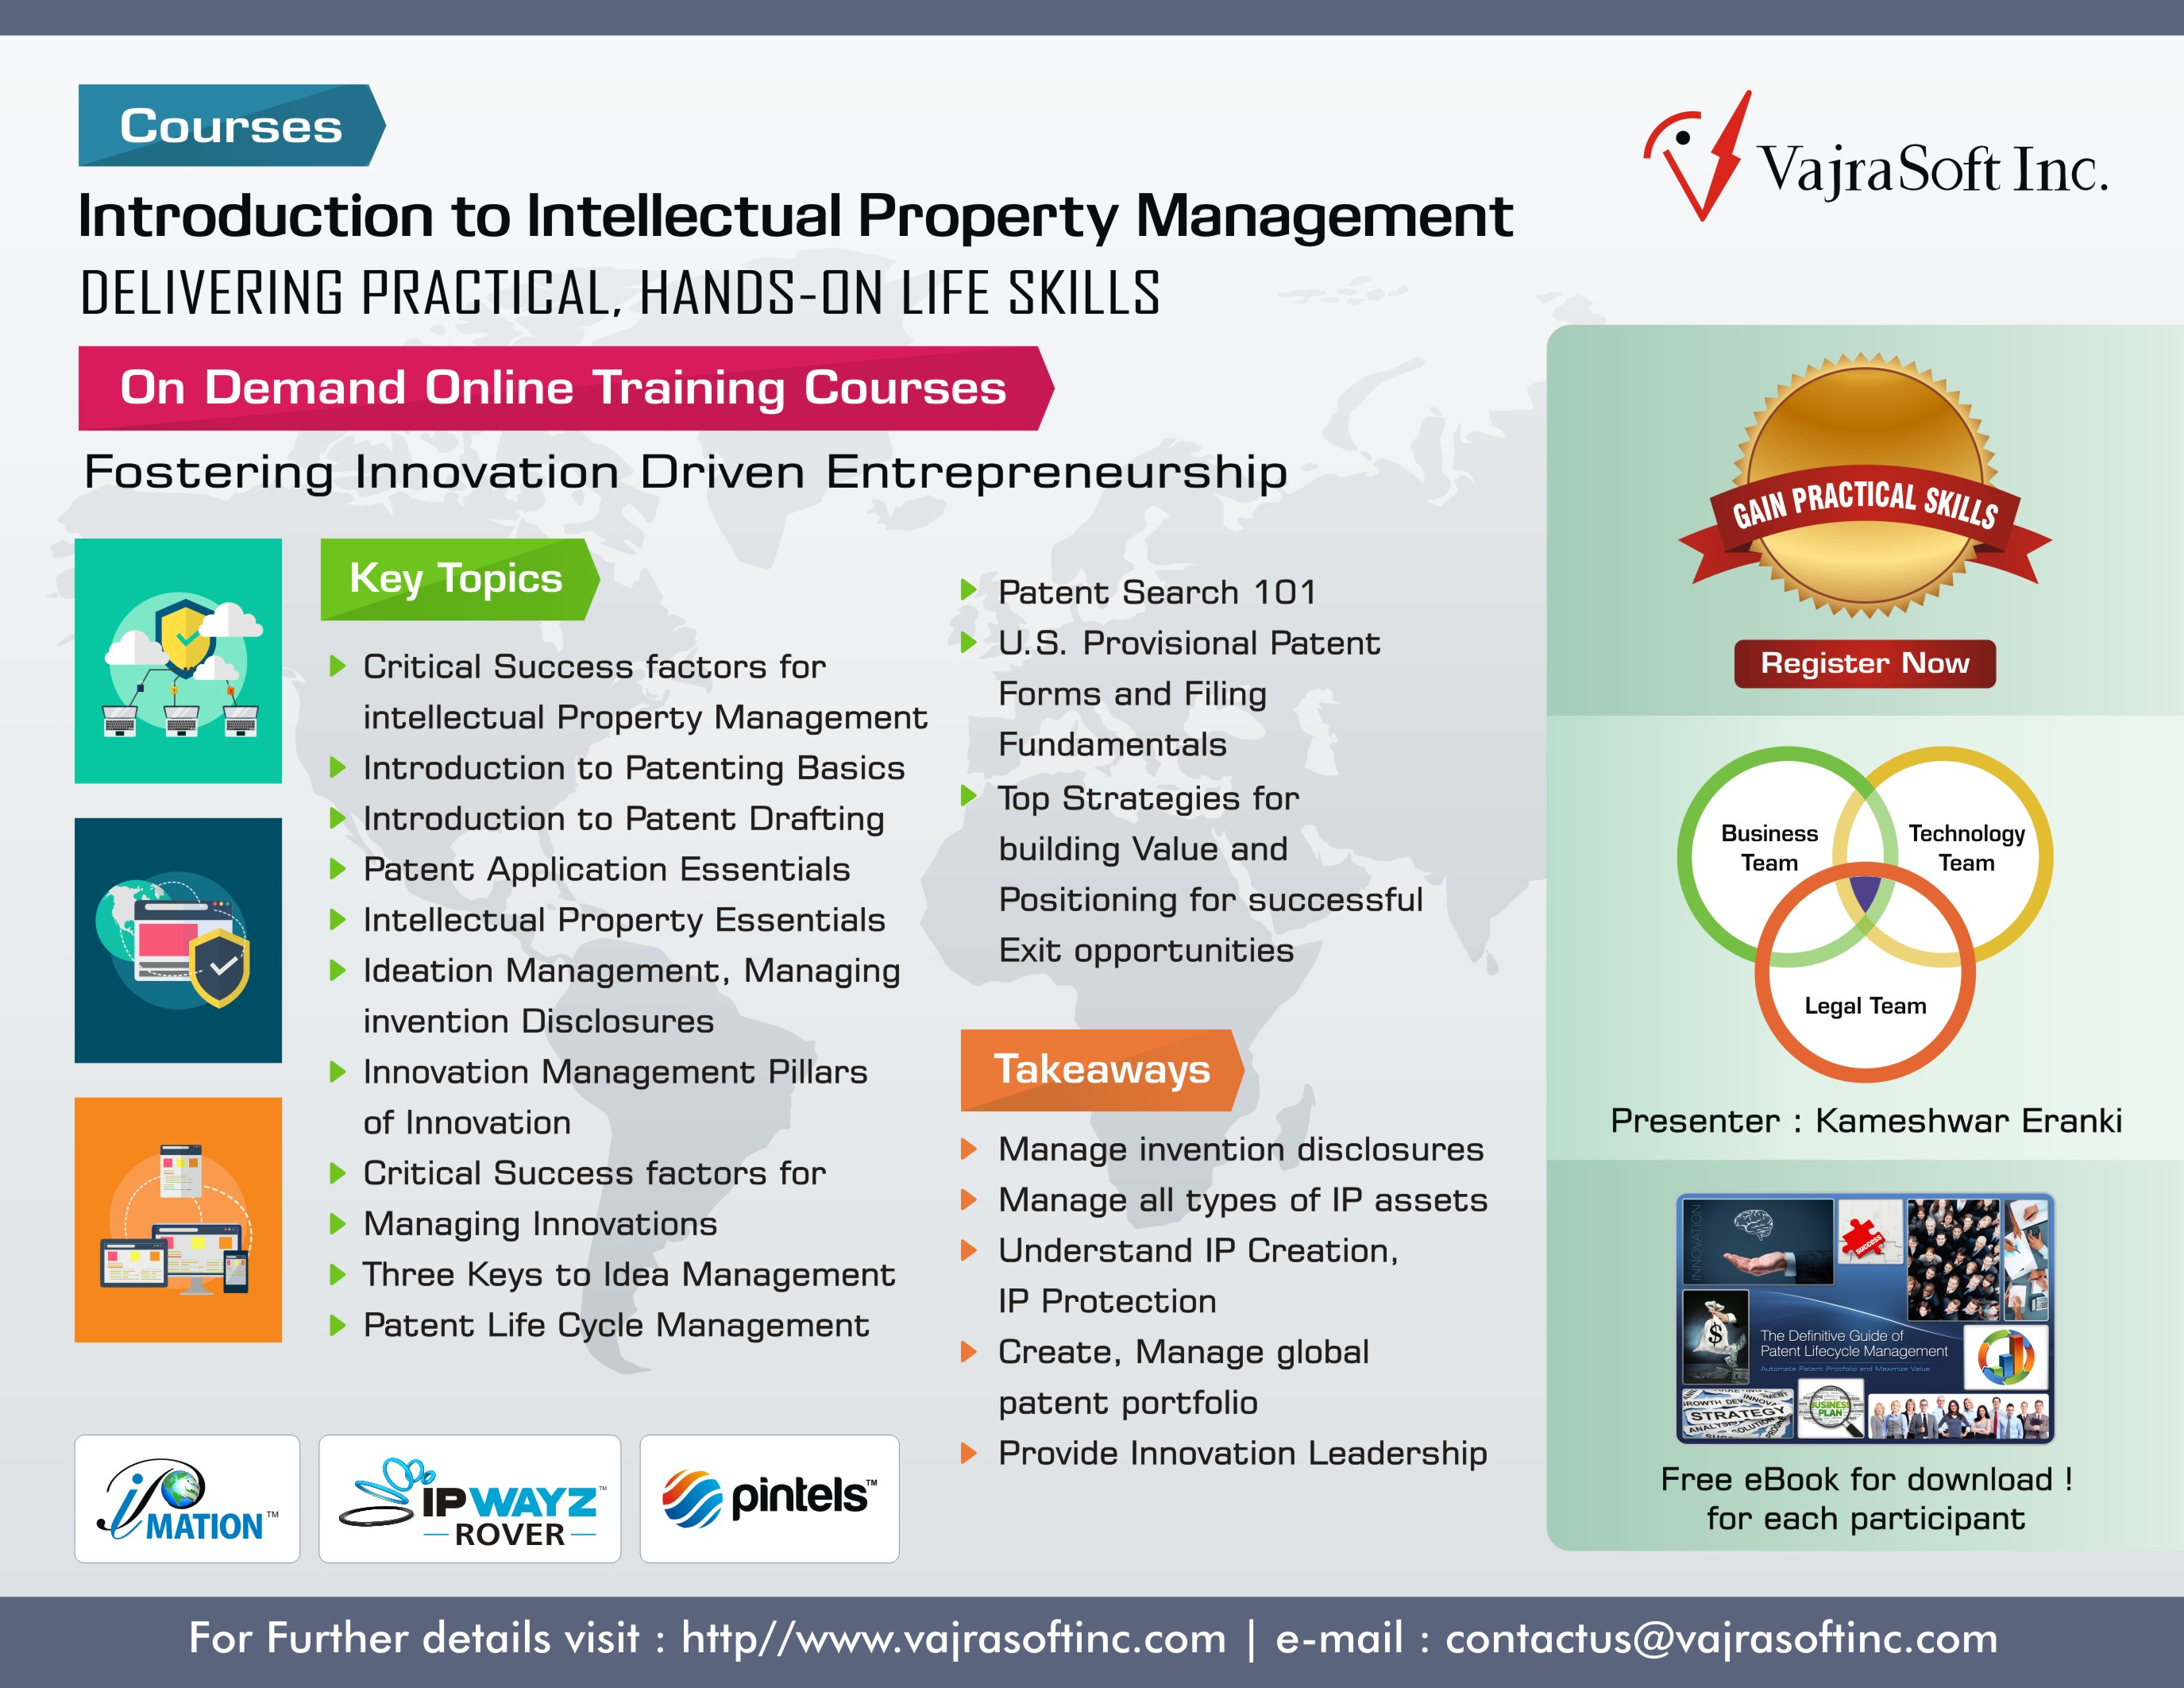 Introduction to Intellectual Property Management